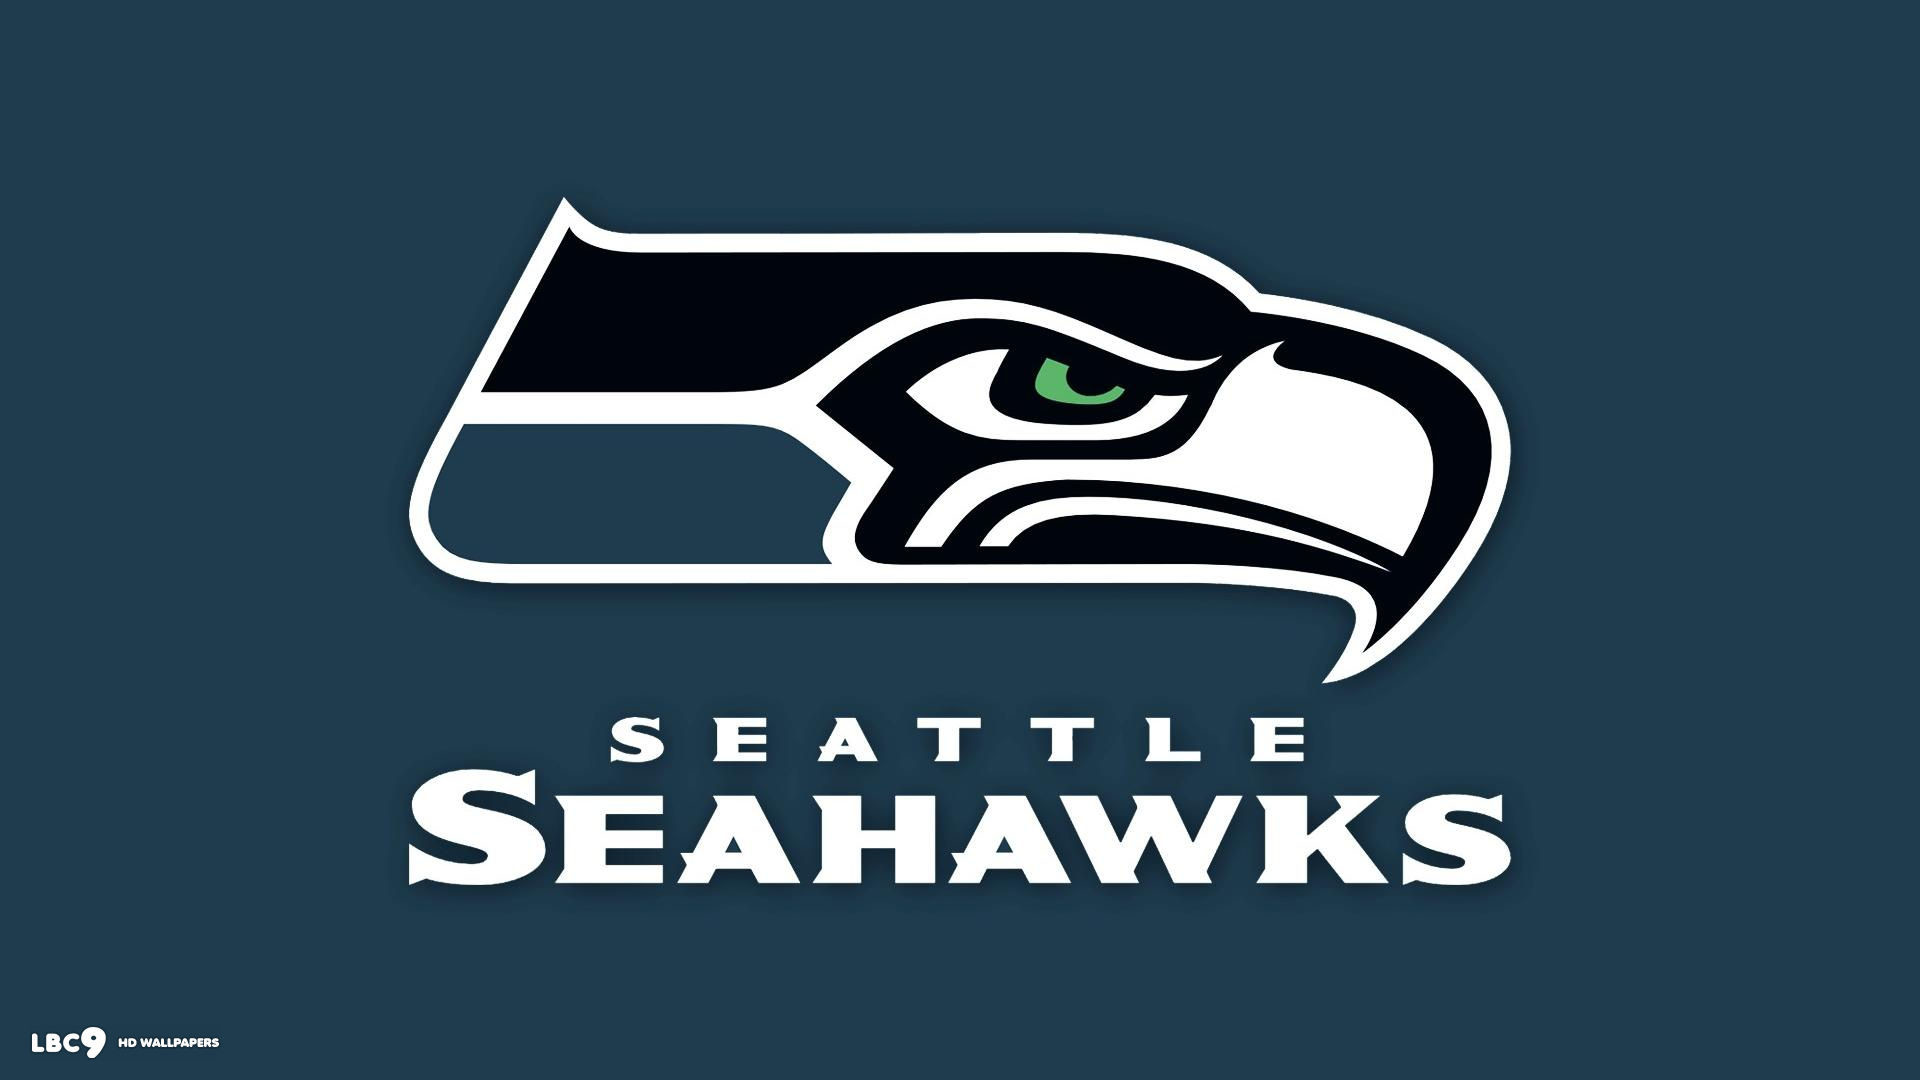 seattle seahawks wallpapers and nfl teams hd backgrounds